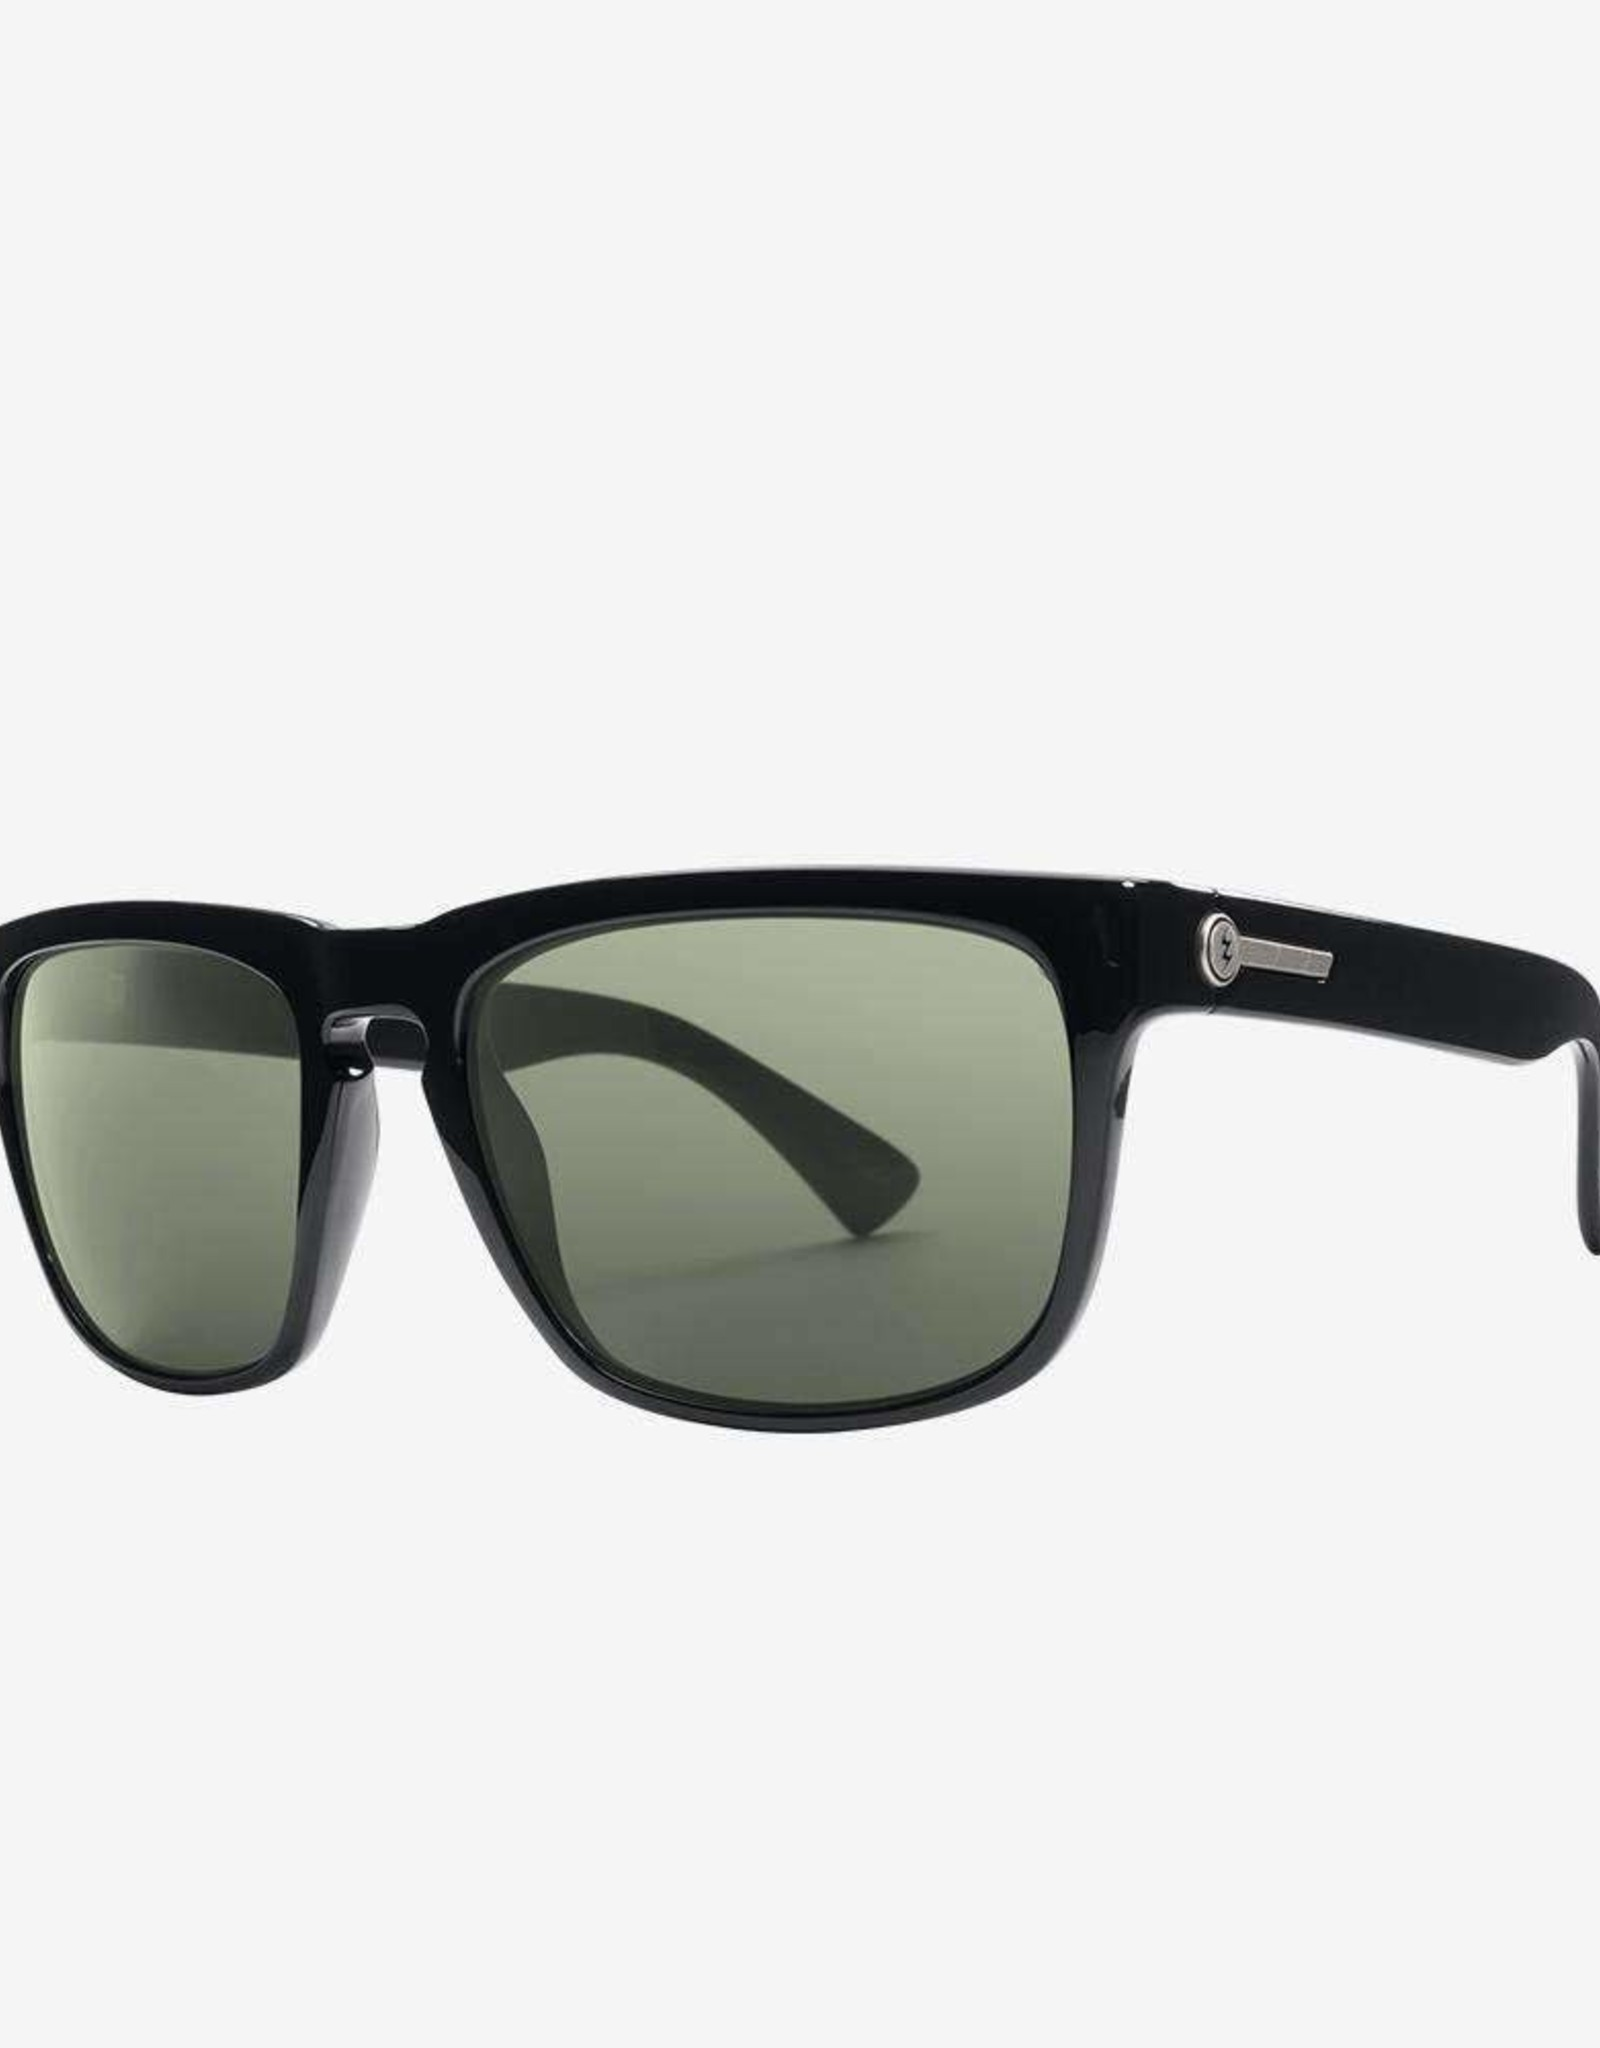 Electric Visual Electric - KNOXVILLE XL - Gloss Black w/ Grey